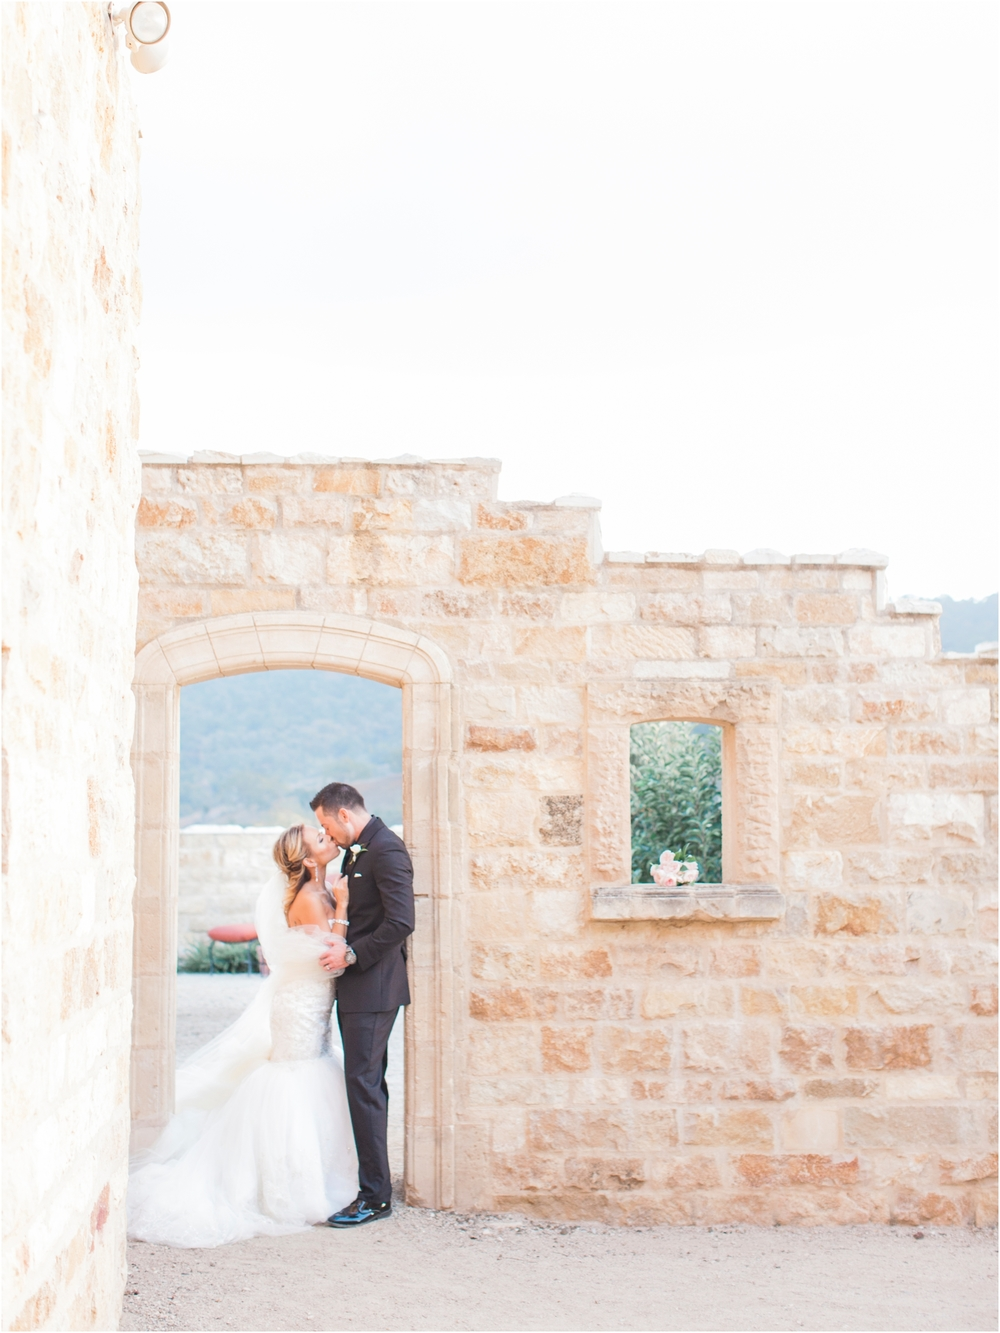 Sunstone Winery elopement wedding photographer Santa Ynez